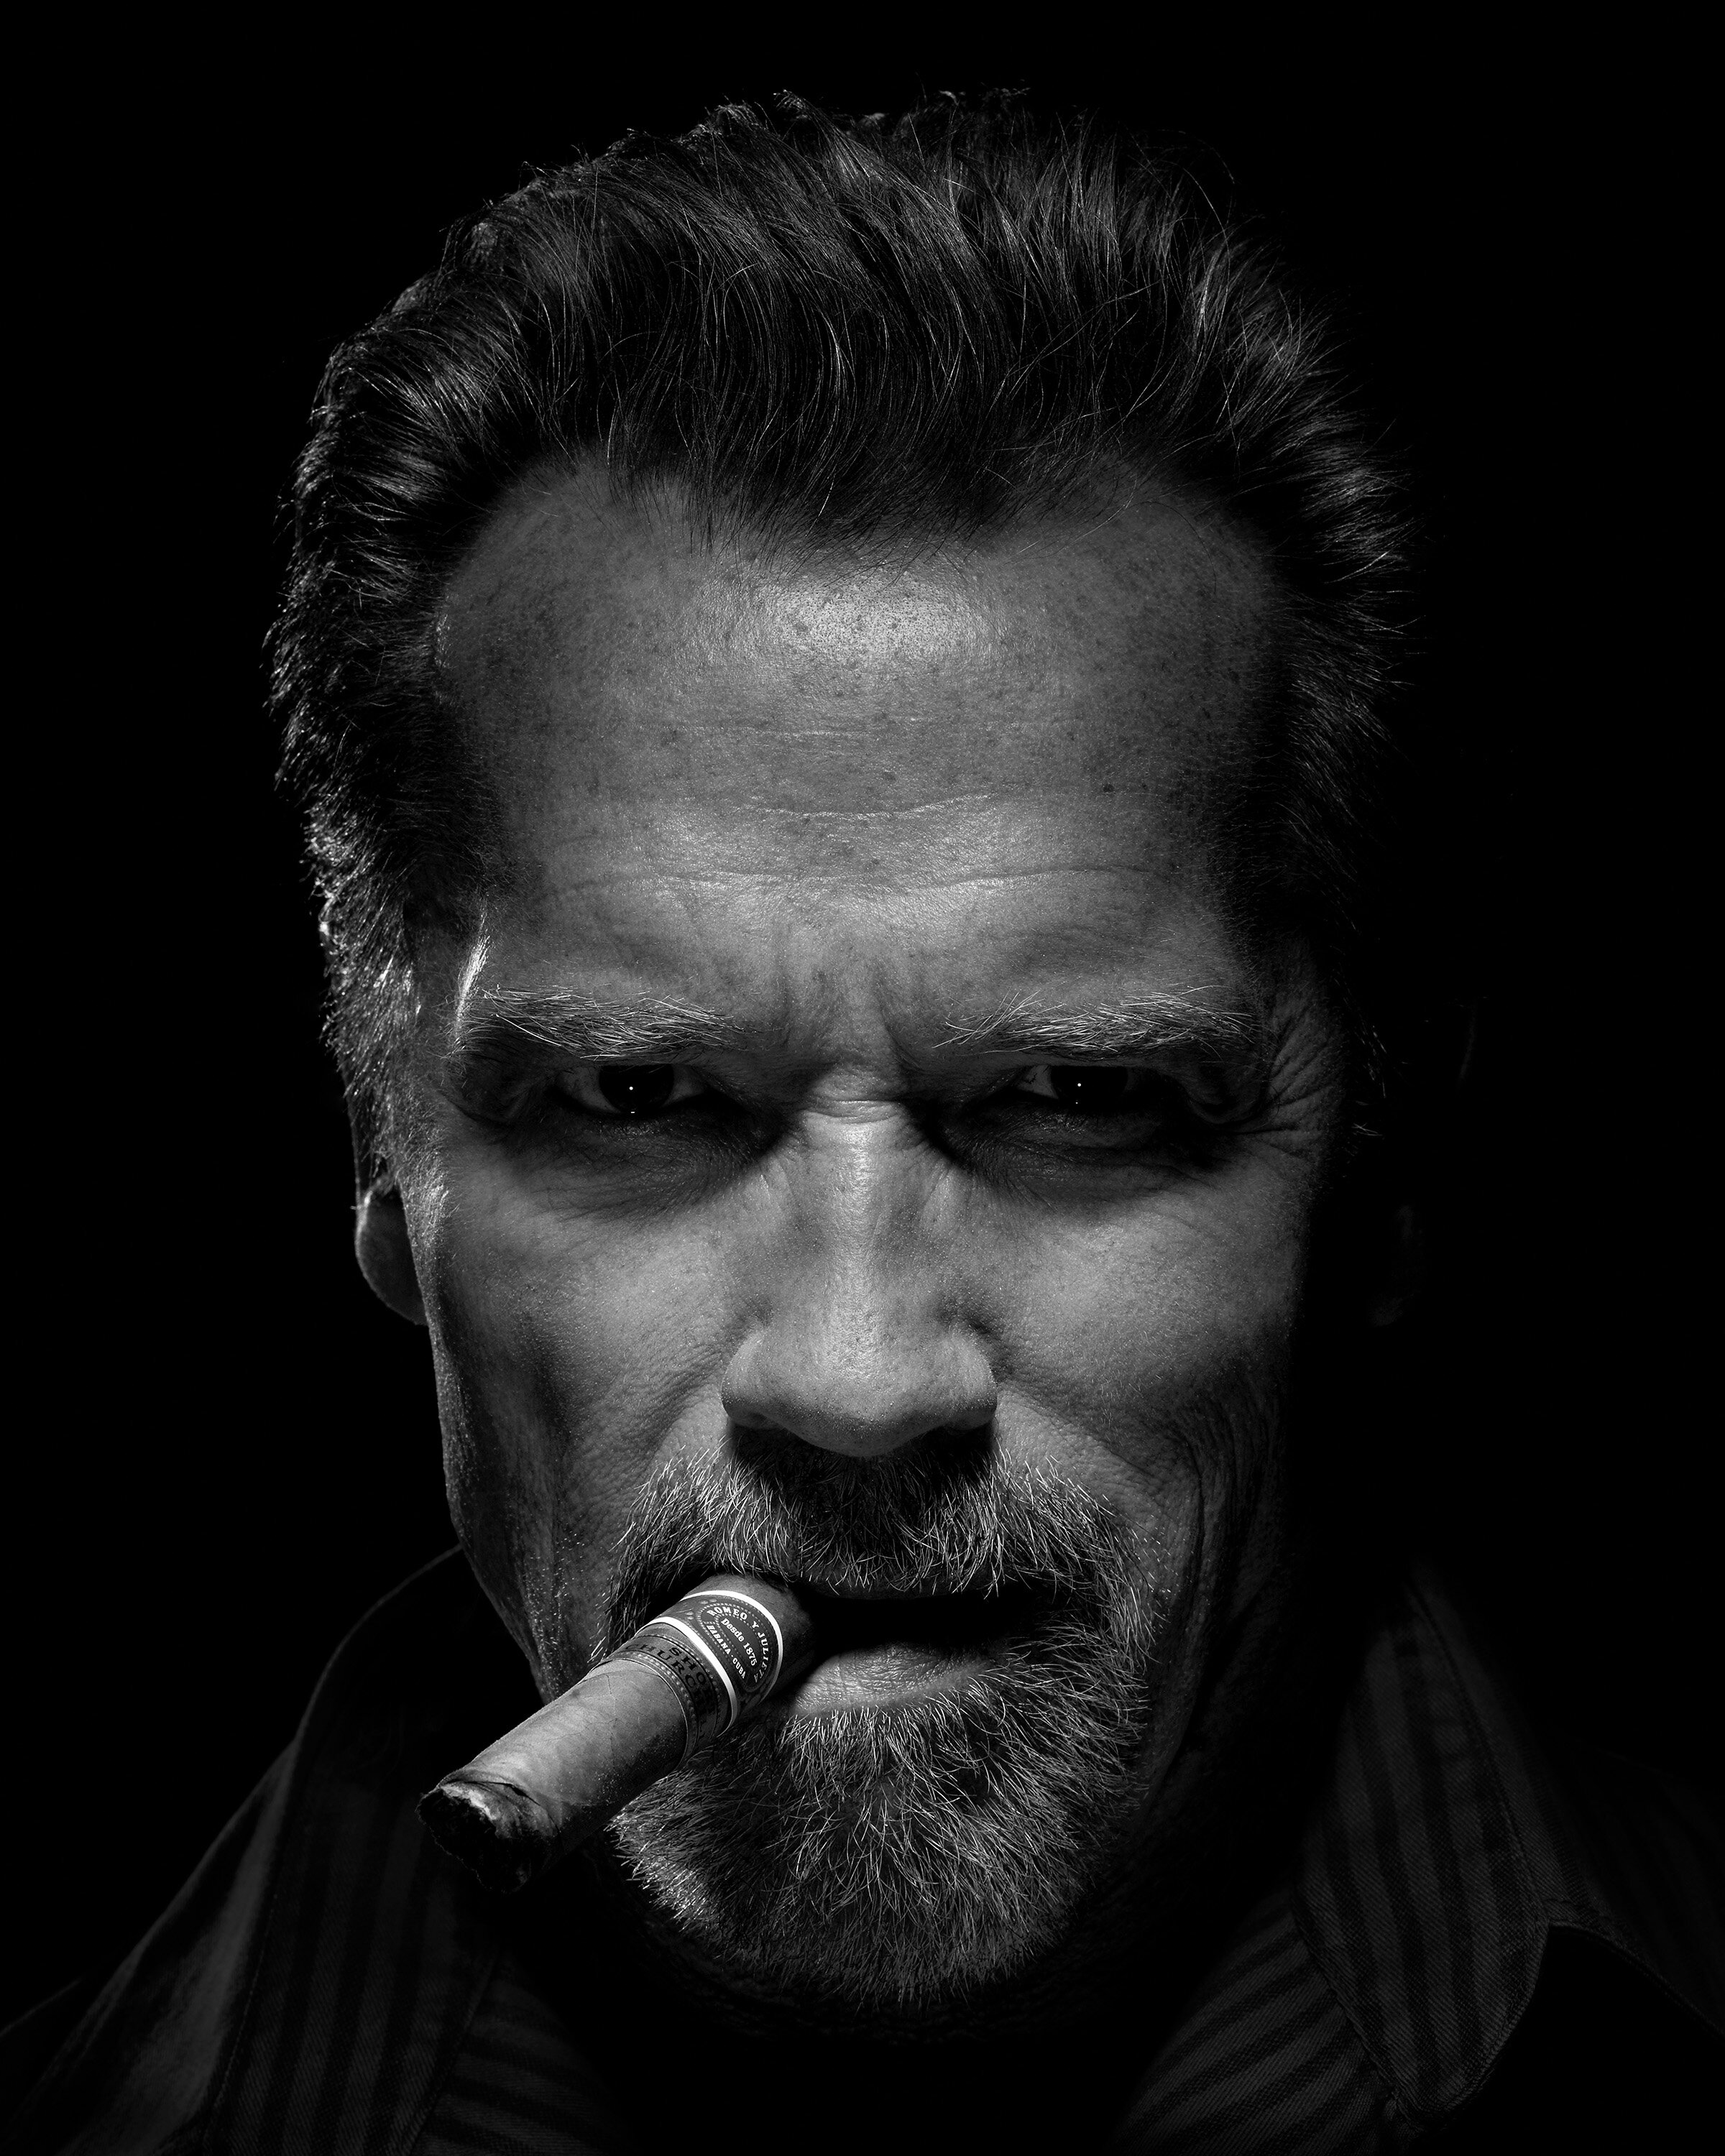 Arnold Schwarzenegger by Timothy White